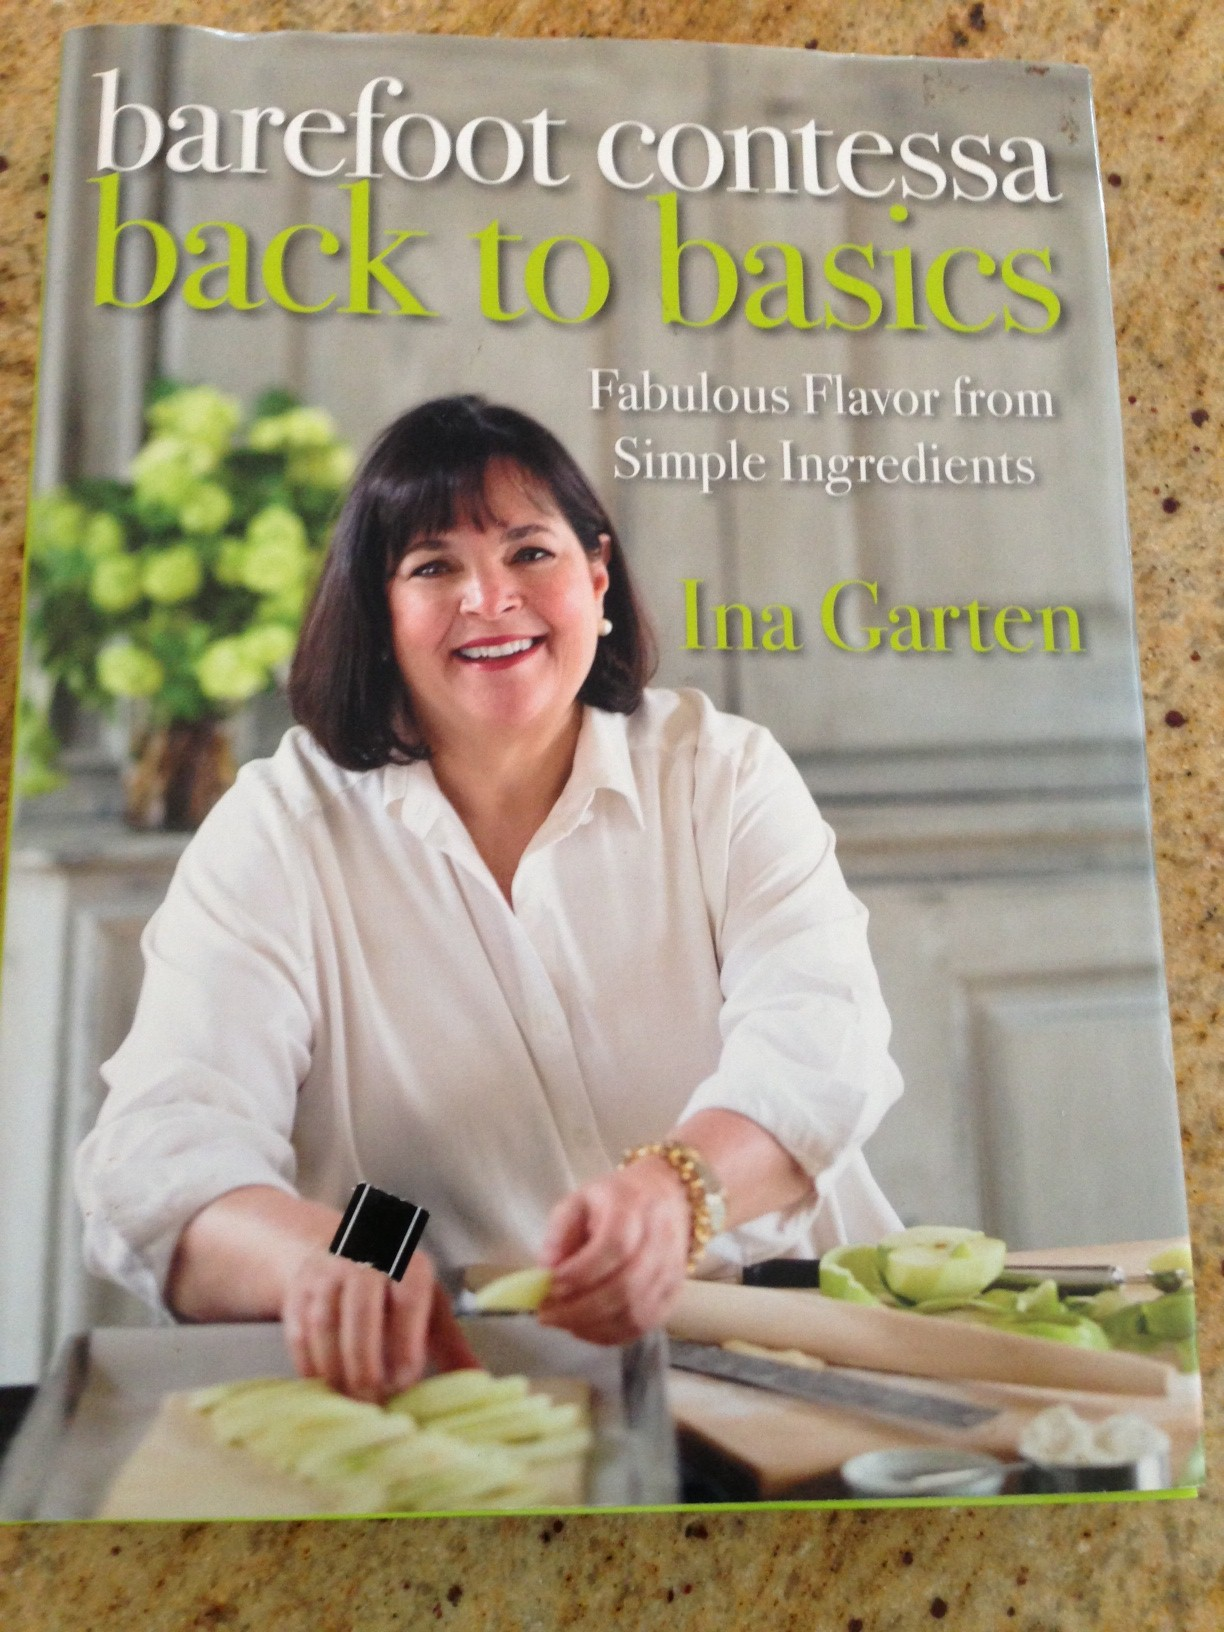 Barefoot contessa at home cookbook 28 images barefoot - Best ina garten cookbook ...